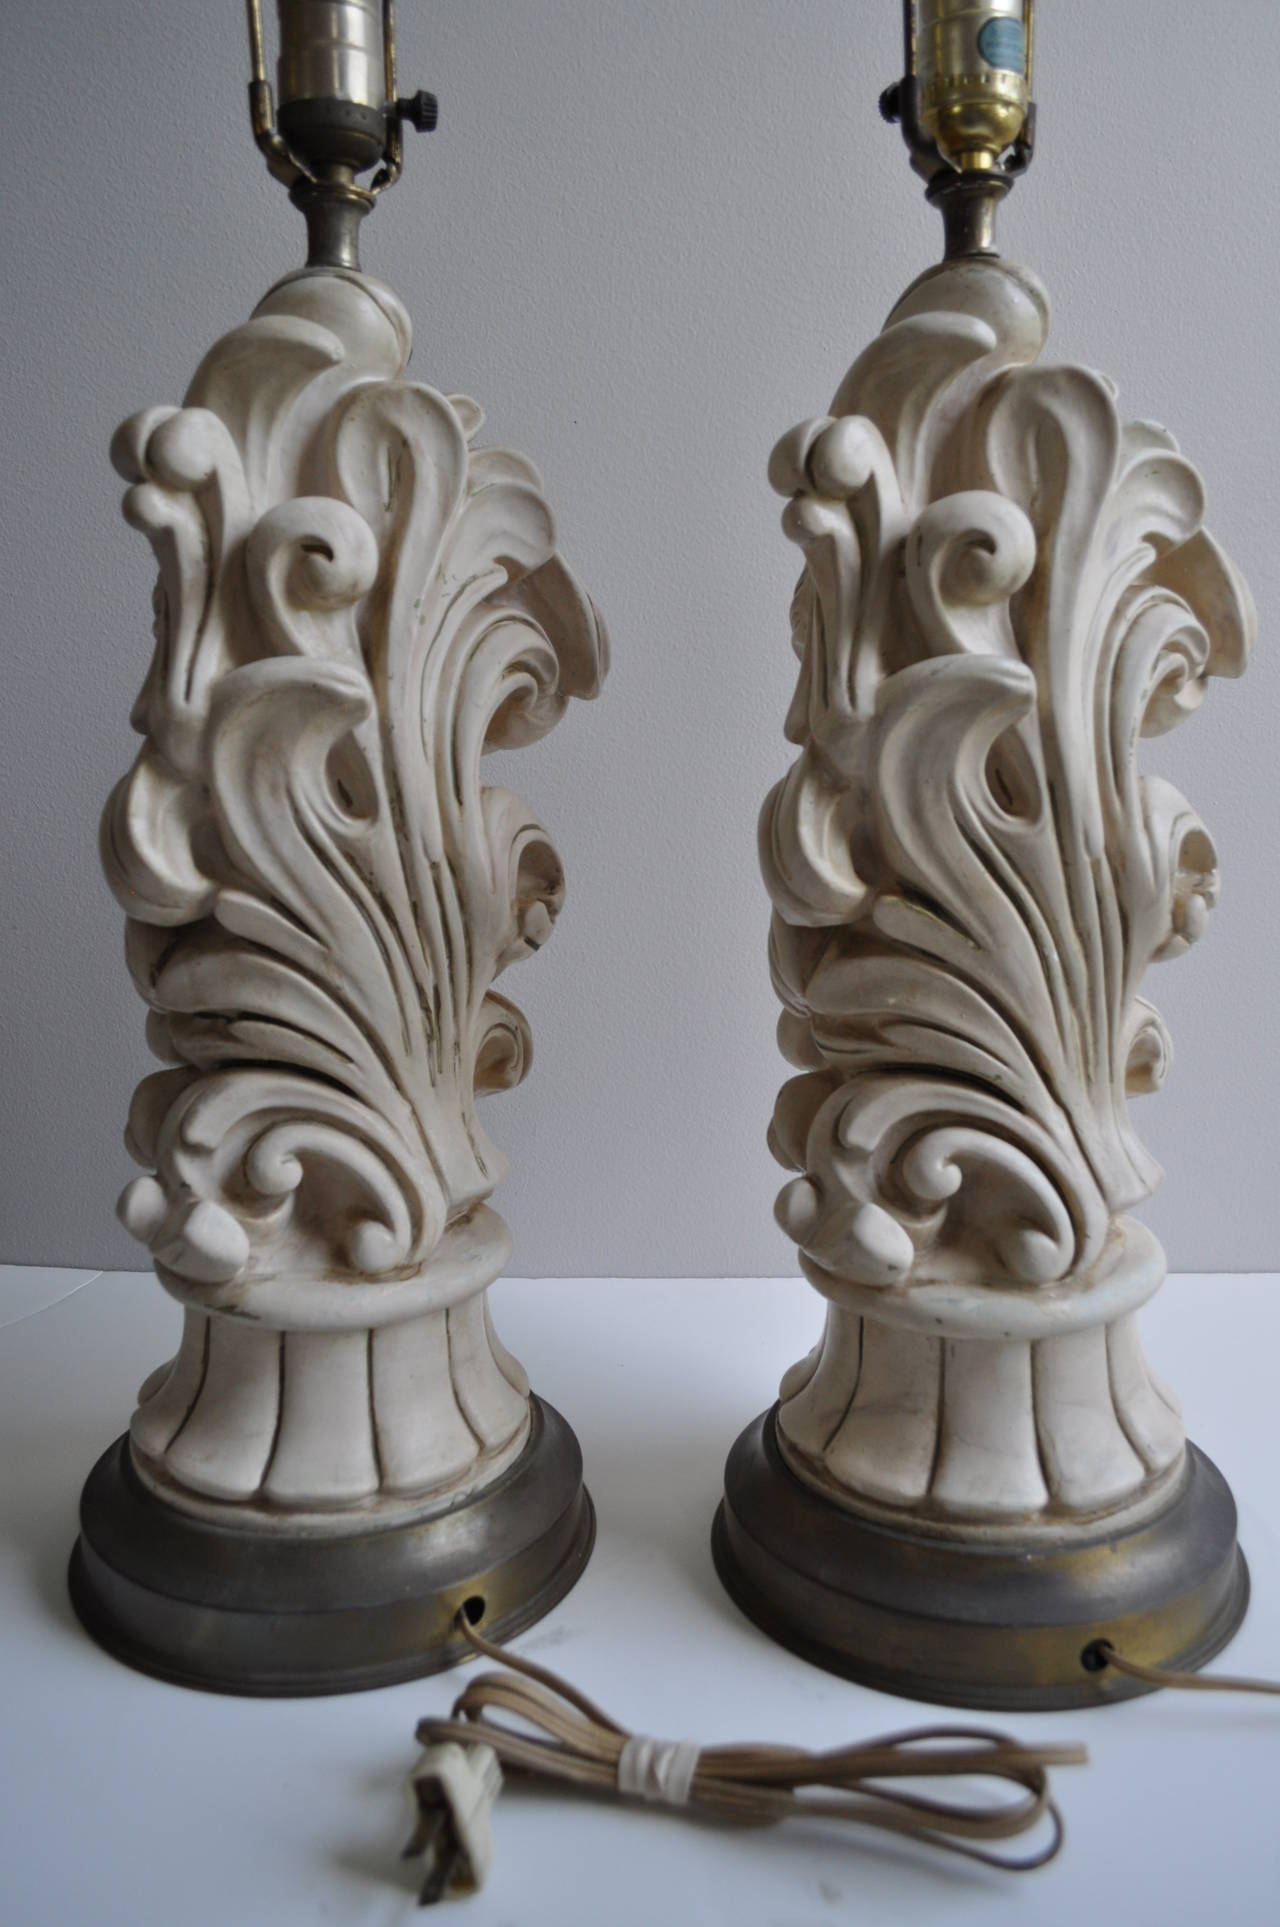 Serge Roche Style Hollywood Regency Chapman Plaster Sculptural Lamps, 1950s In Good Condition For Sale In Lambertville, NJ